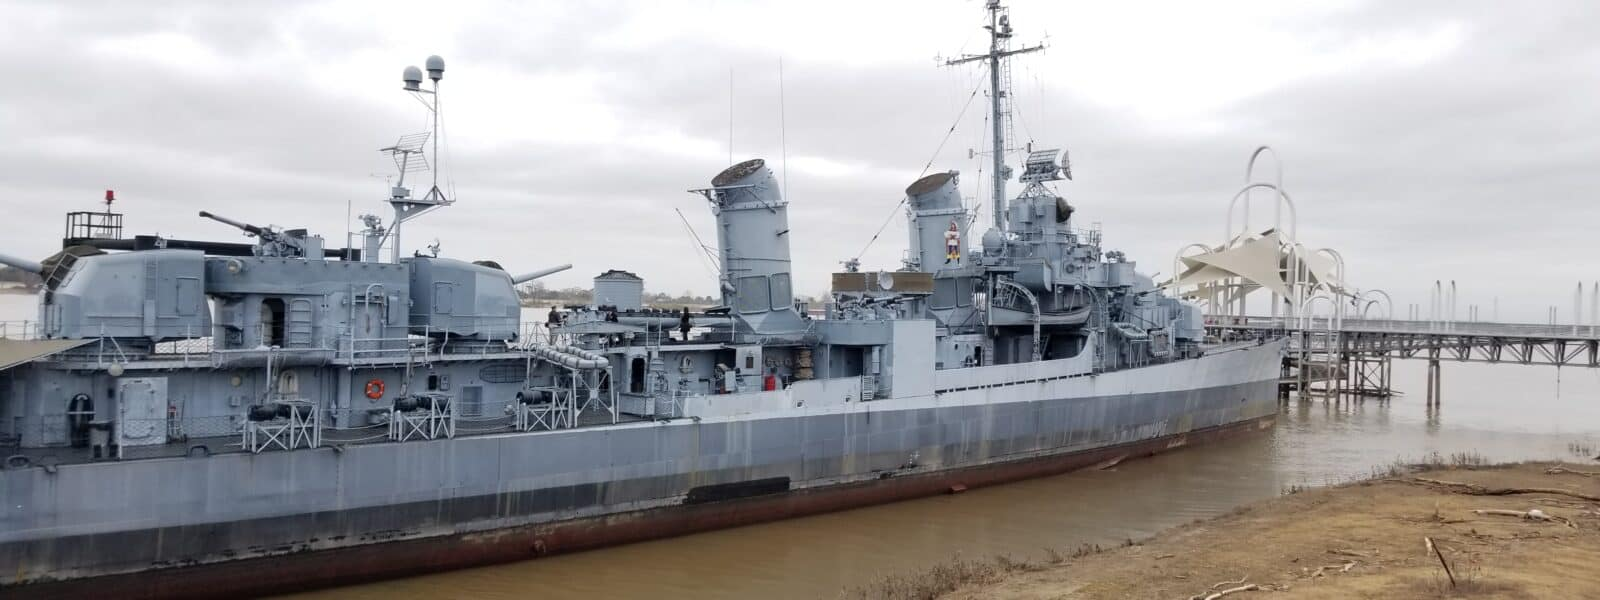 Visiting the USS Kidd in Baton Rouge, Louisiana